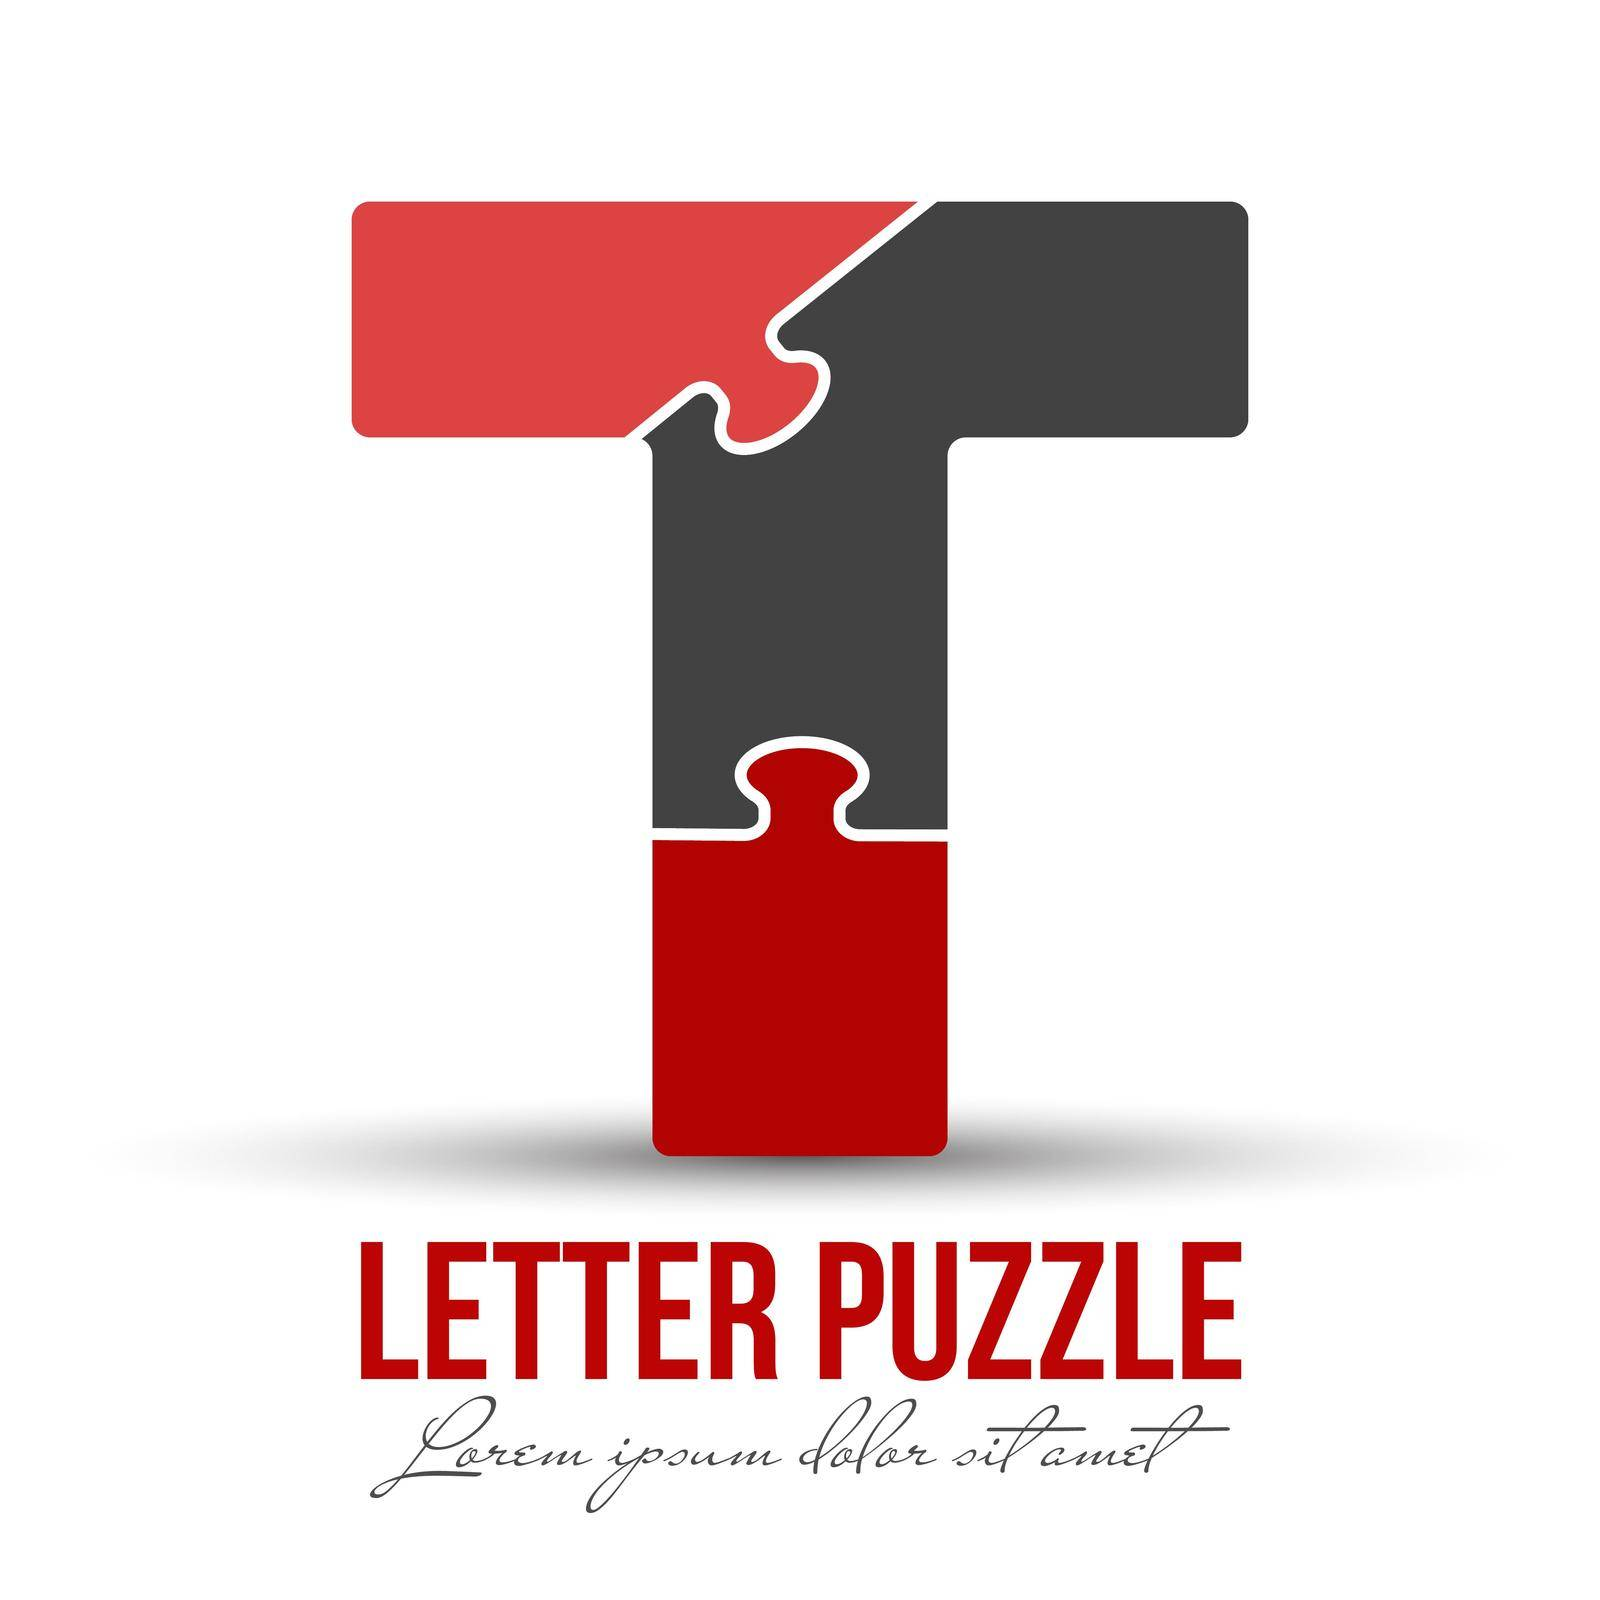 Letter T is made up of puzzles. Vector illustration for logo, brand logo, sticker or scrapbooking, for education. Simple style.